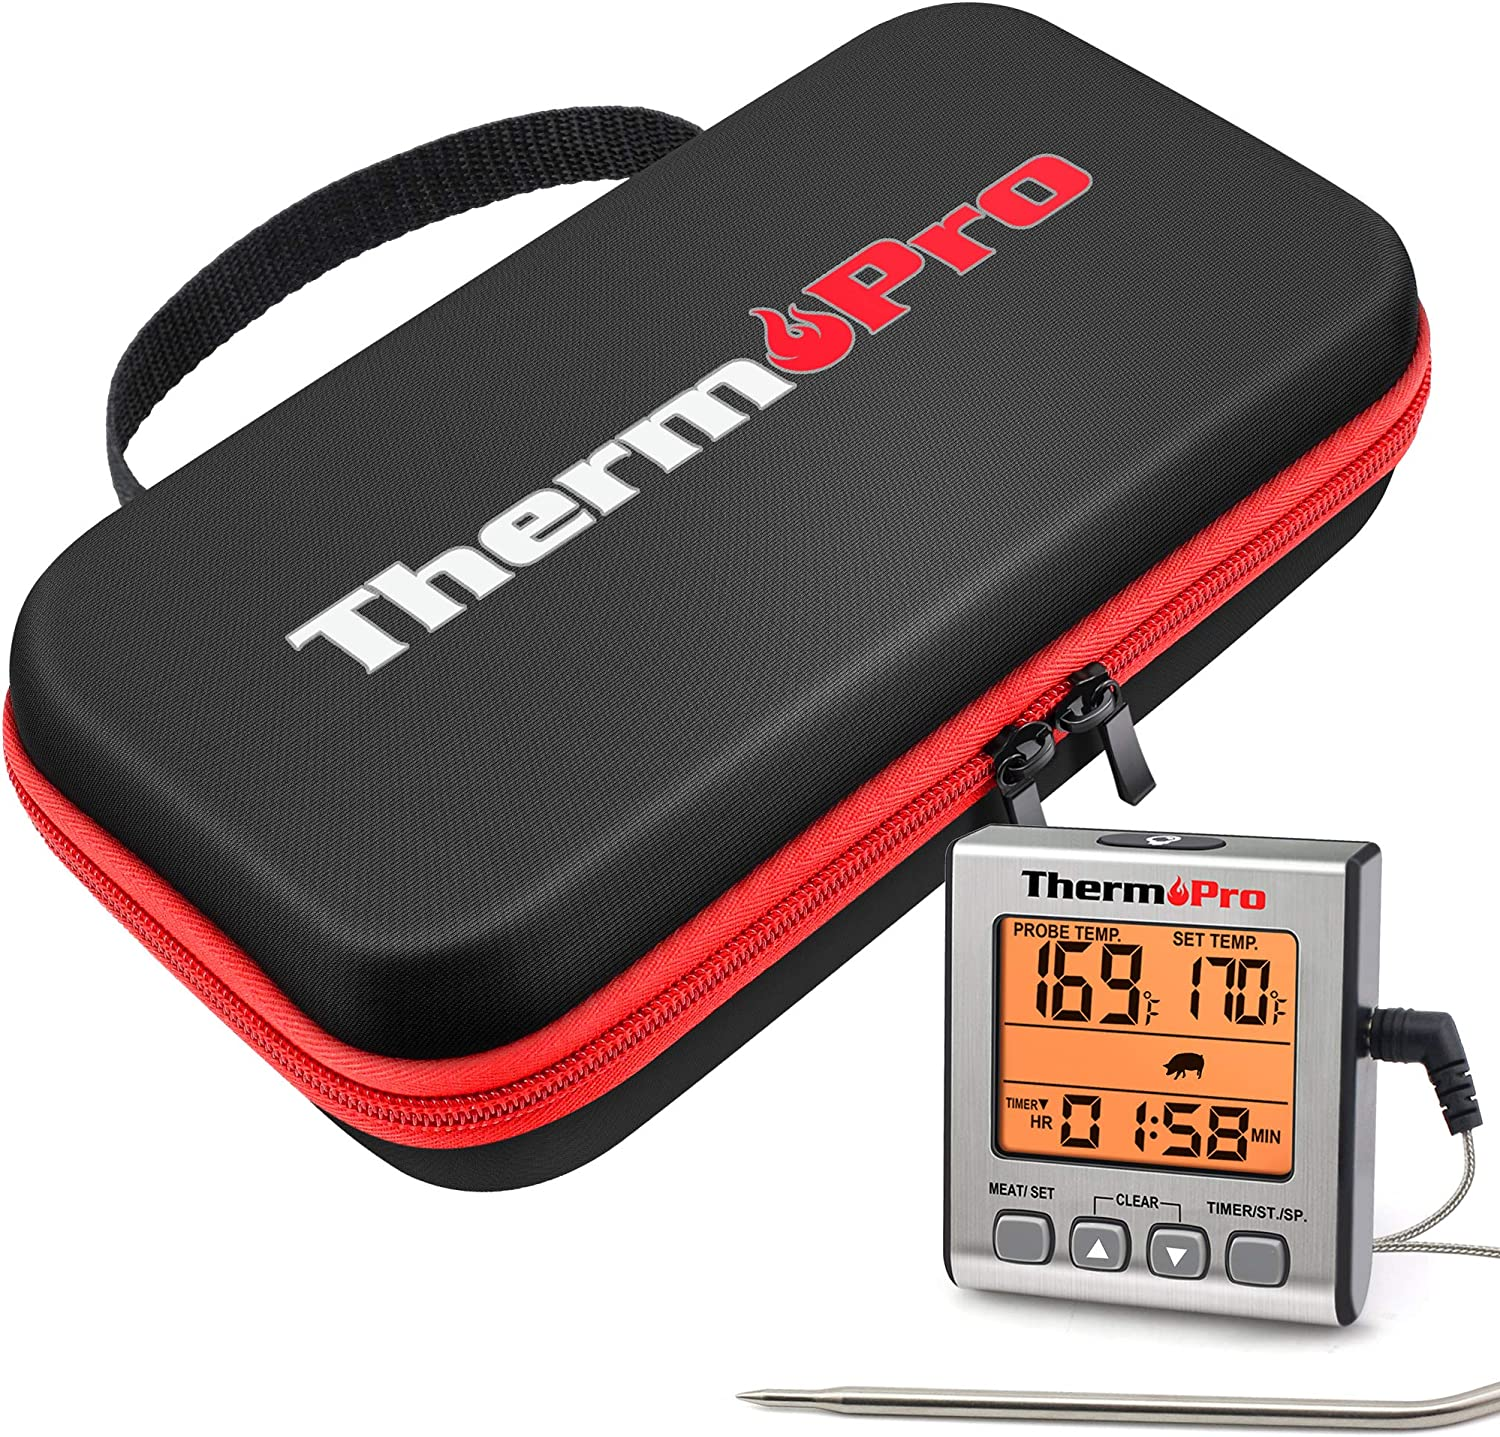 ThermoPro TP-16S Digital Meat Thermometer Smoker Candy Food BBQ Cooking ThermoPro TP98 Hard Carrying Case Storage Bag